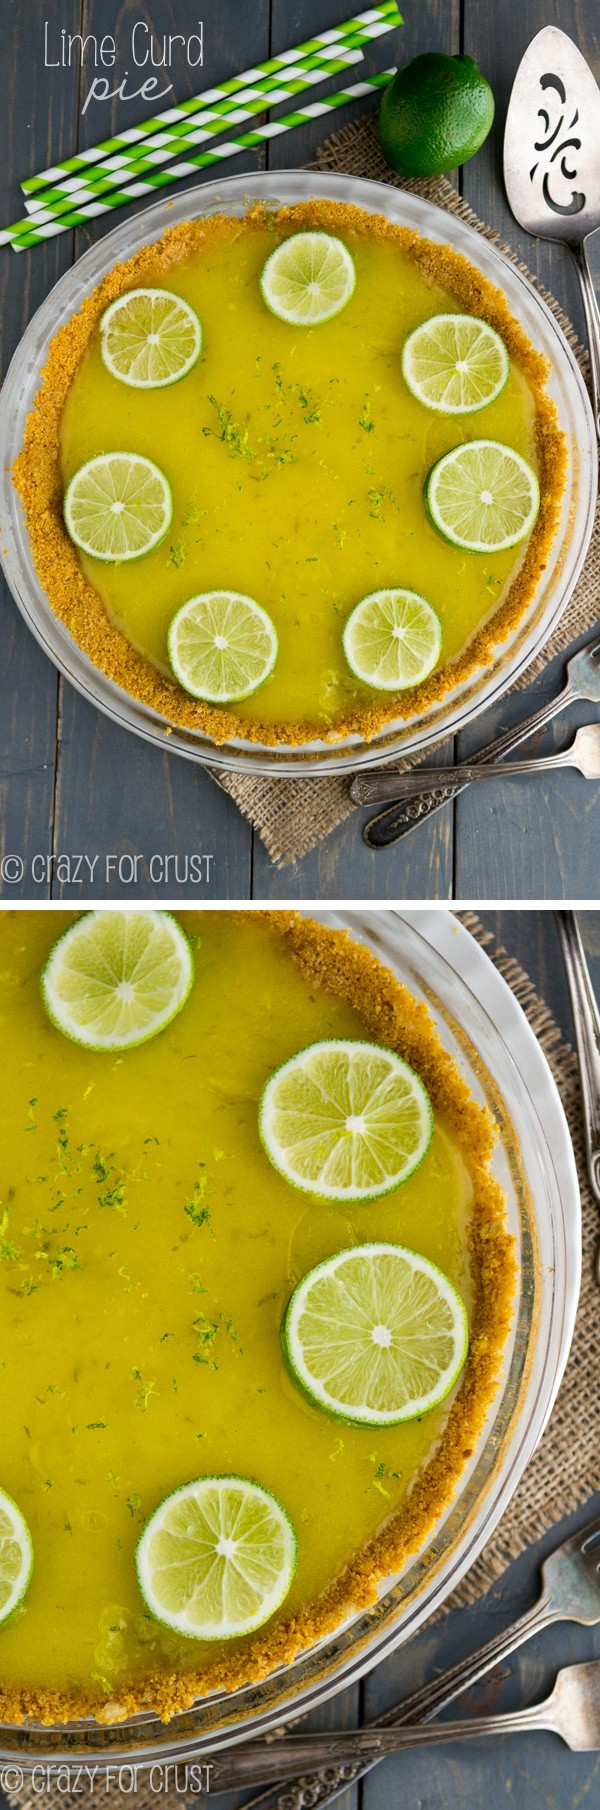 Sophisticated Homemade Lime Lime Curd Pie A Graham Cracker Crust Filled Lime Curd Pie Crazy Lemon Juice Benefits Difference Between Lime Lemon Tree Crust Difference Between Lime houzz 01 Difference Between Lime And Lemon